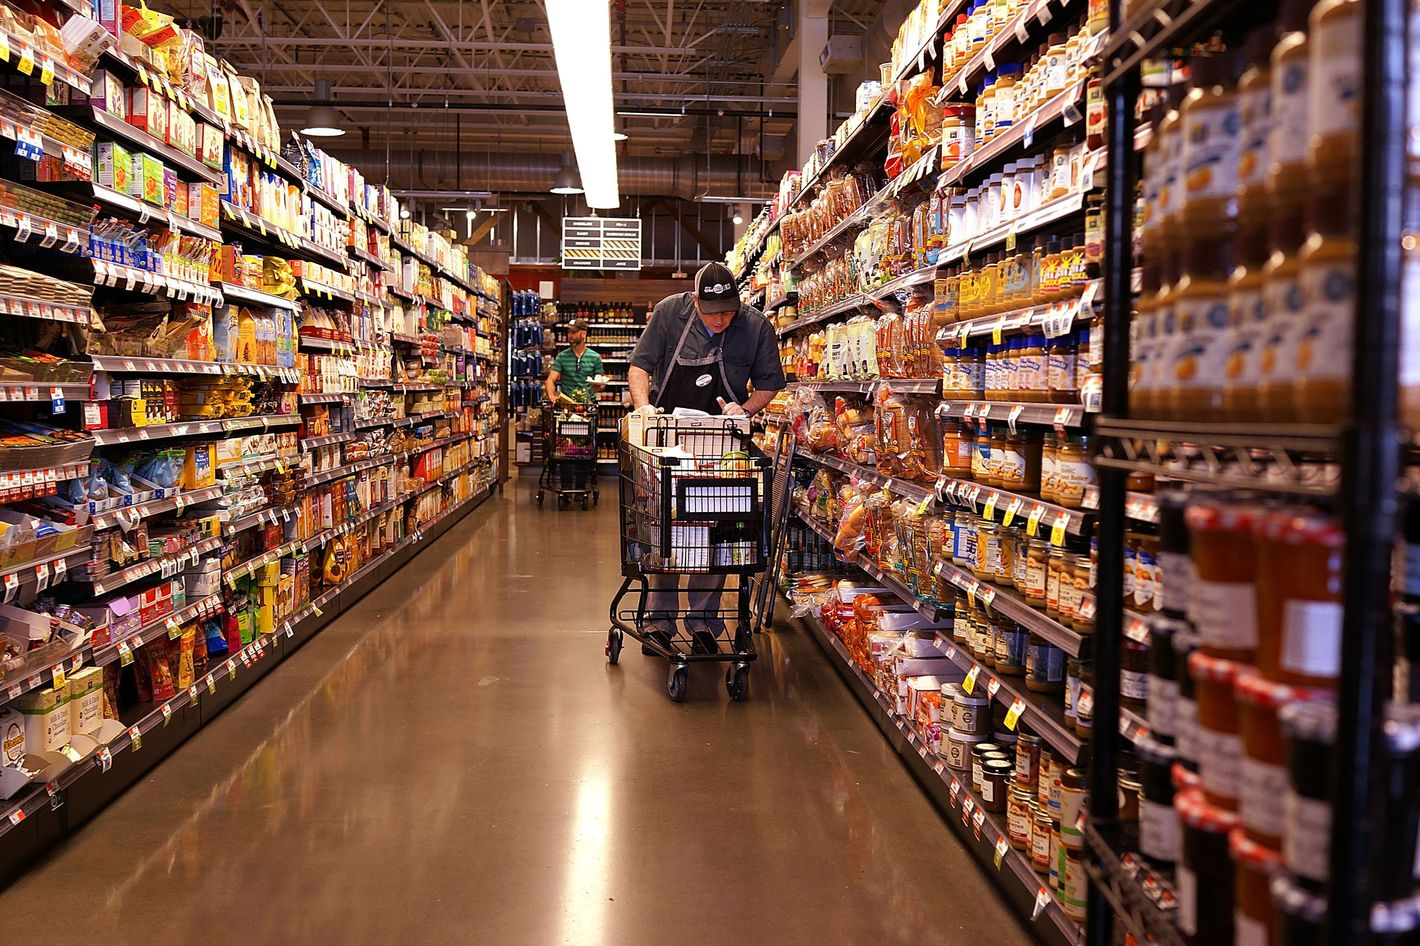 Large Cap Grocery Stores: The Kroger Co. (NYSE:KR)